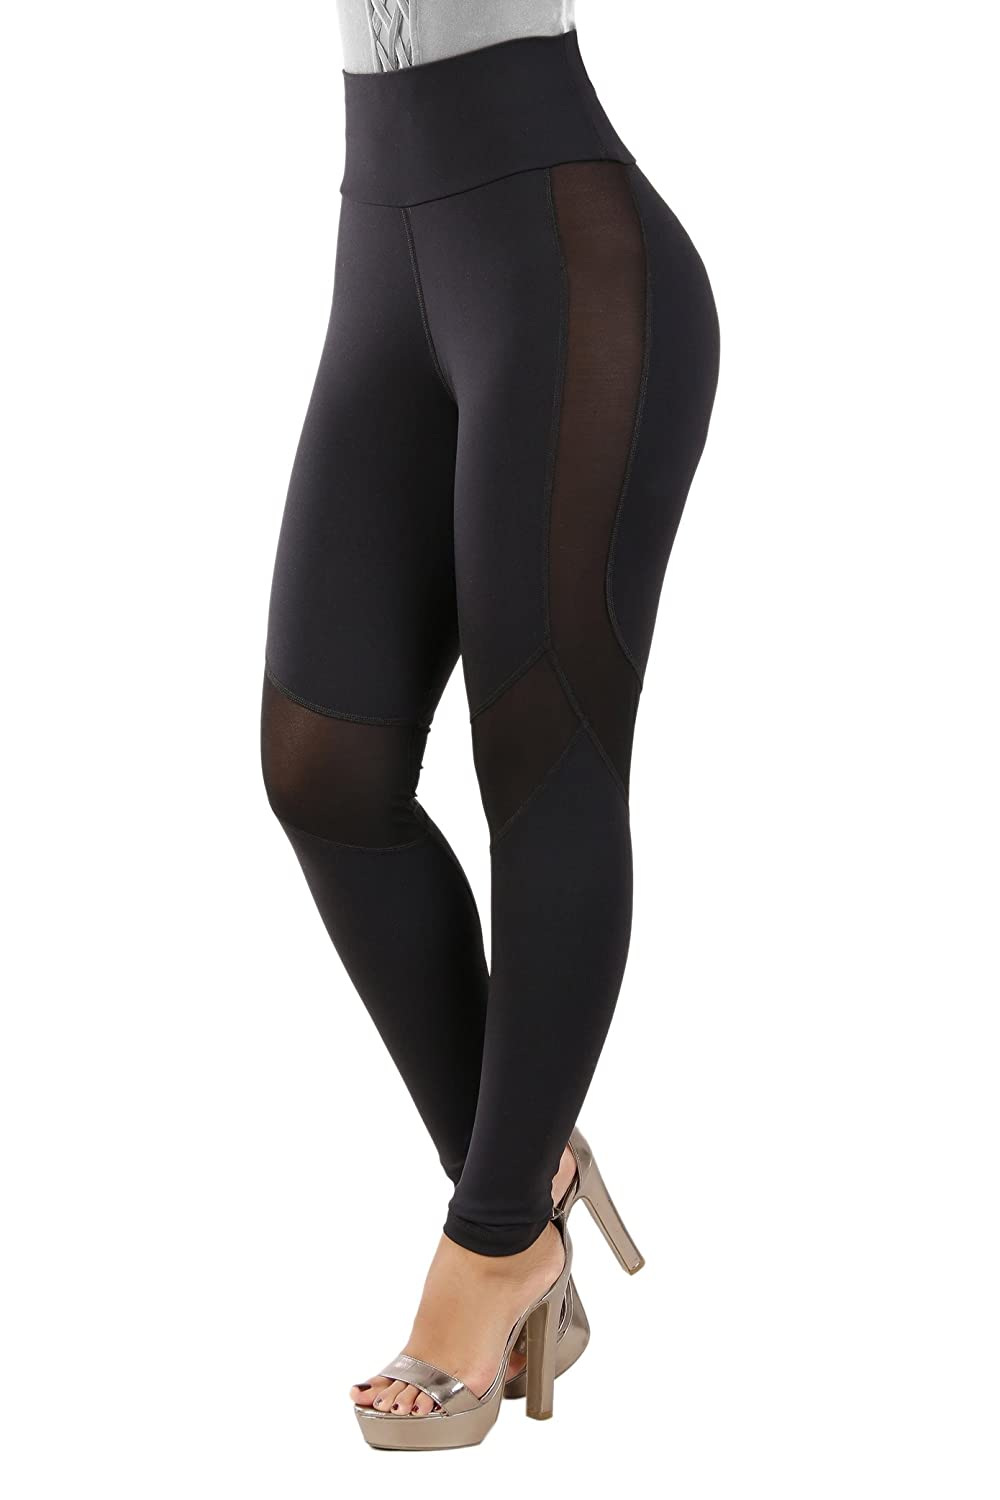 79ffc2136 LEGGINGS TO LOVE  Double layered shapewear leggings are the backbone of  every closet